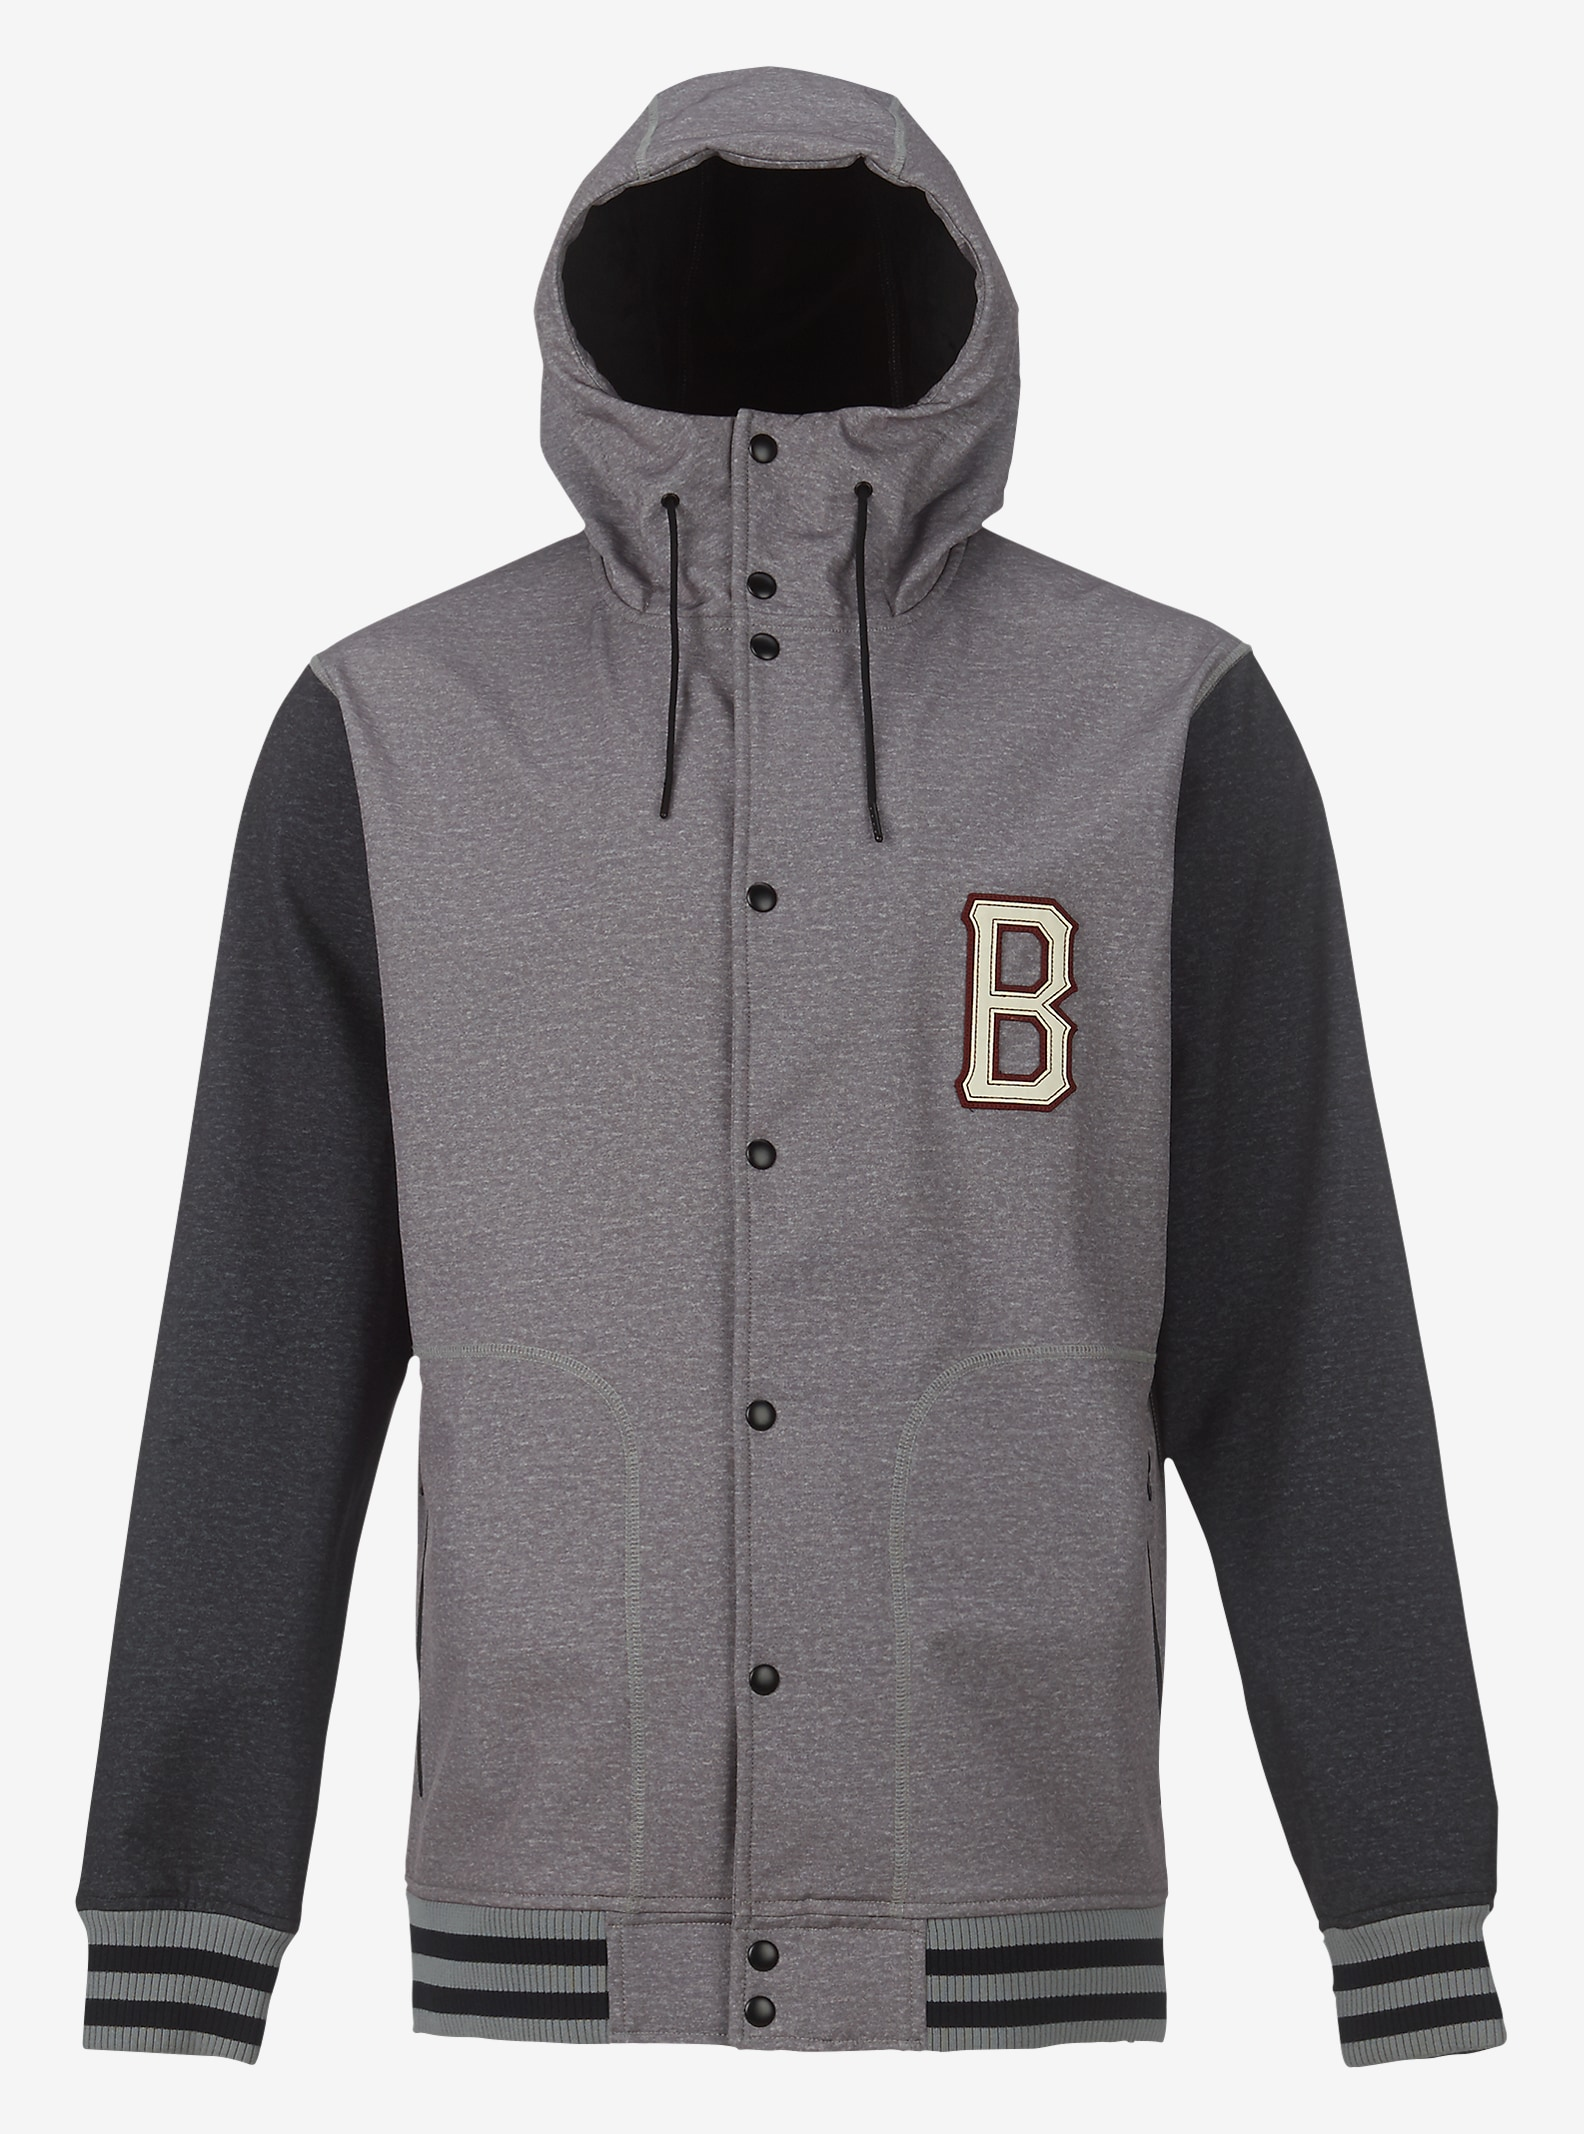 Burton Capital Softshell shown in Monument Heather